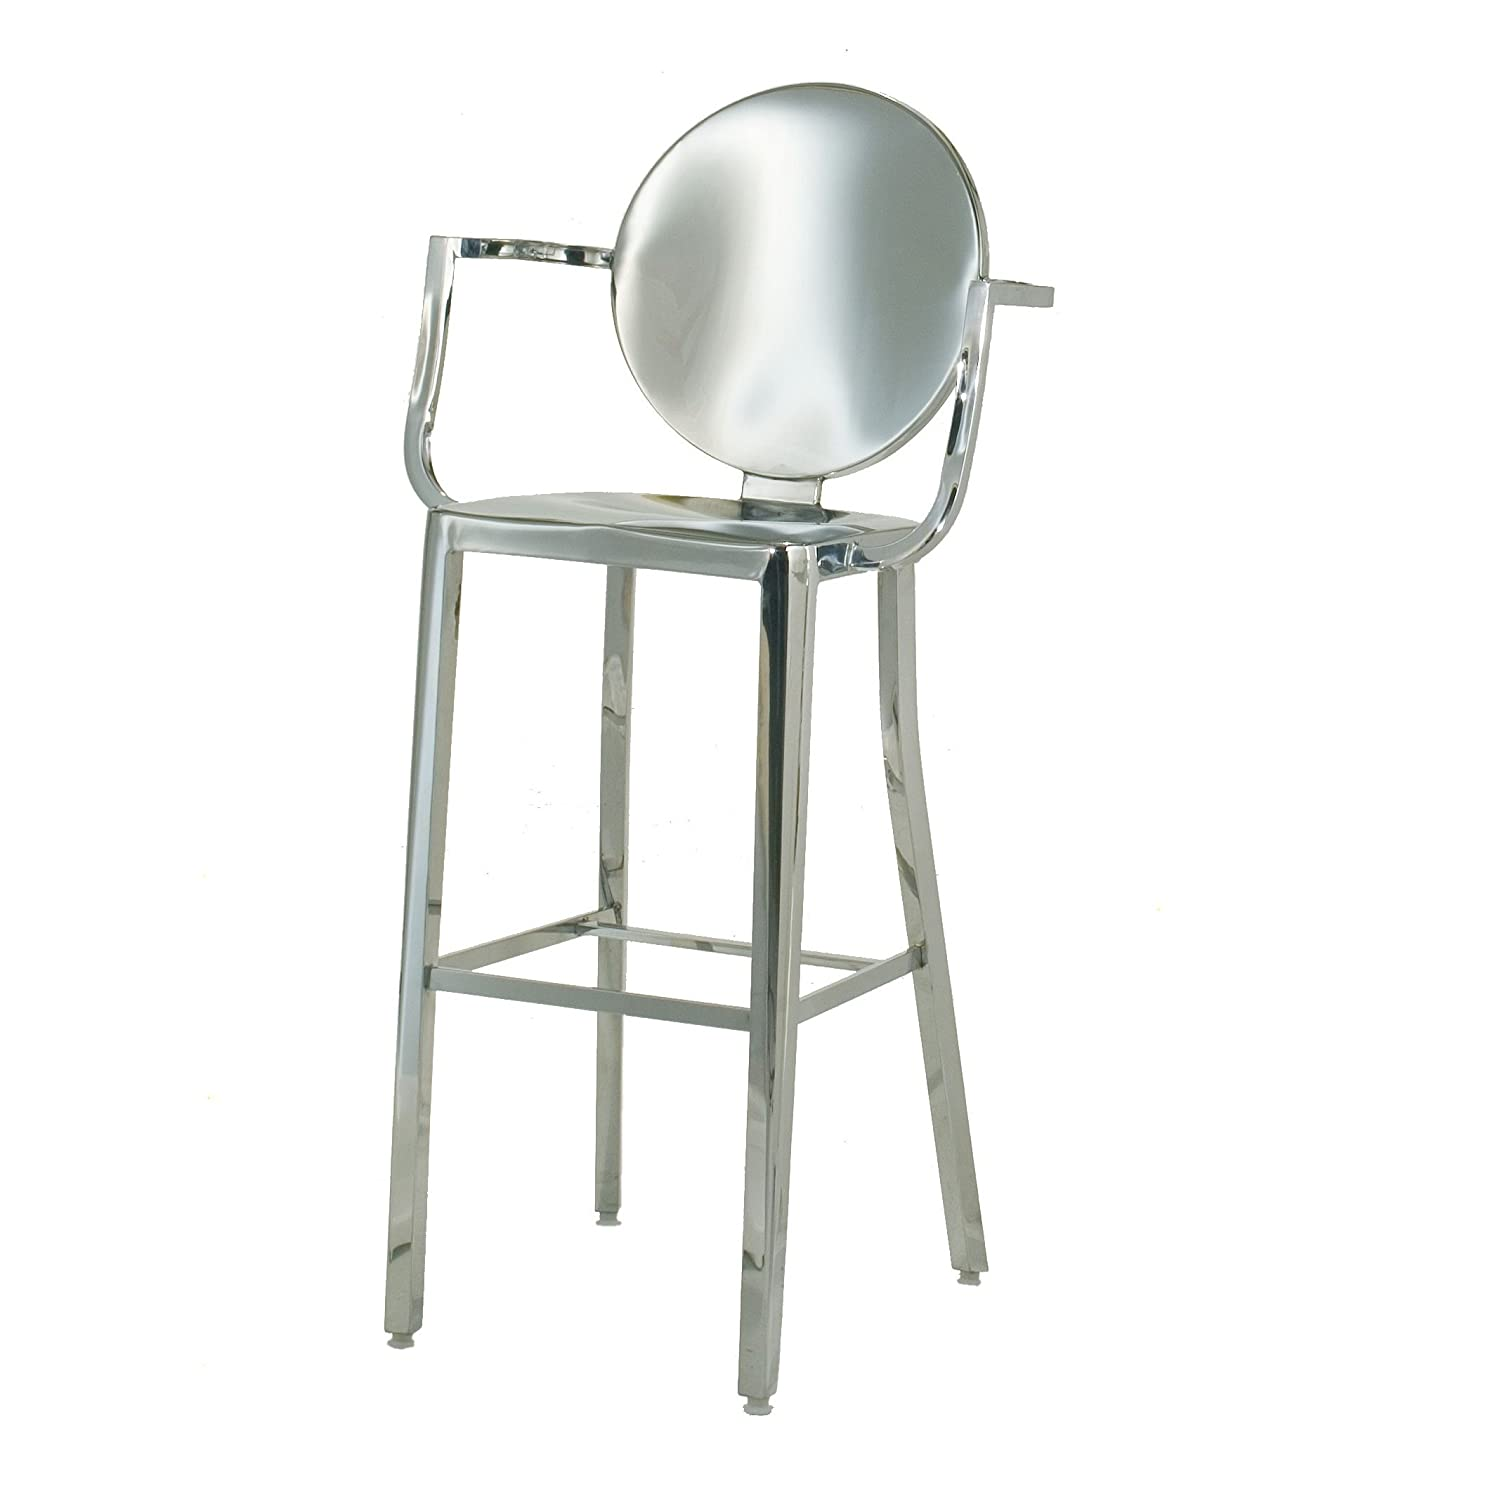 Stainless Steel Bar Stools With Backs Stainless Steel Bar